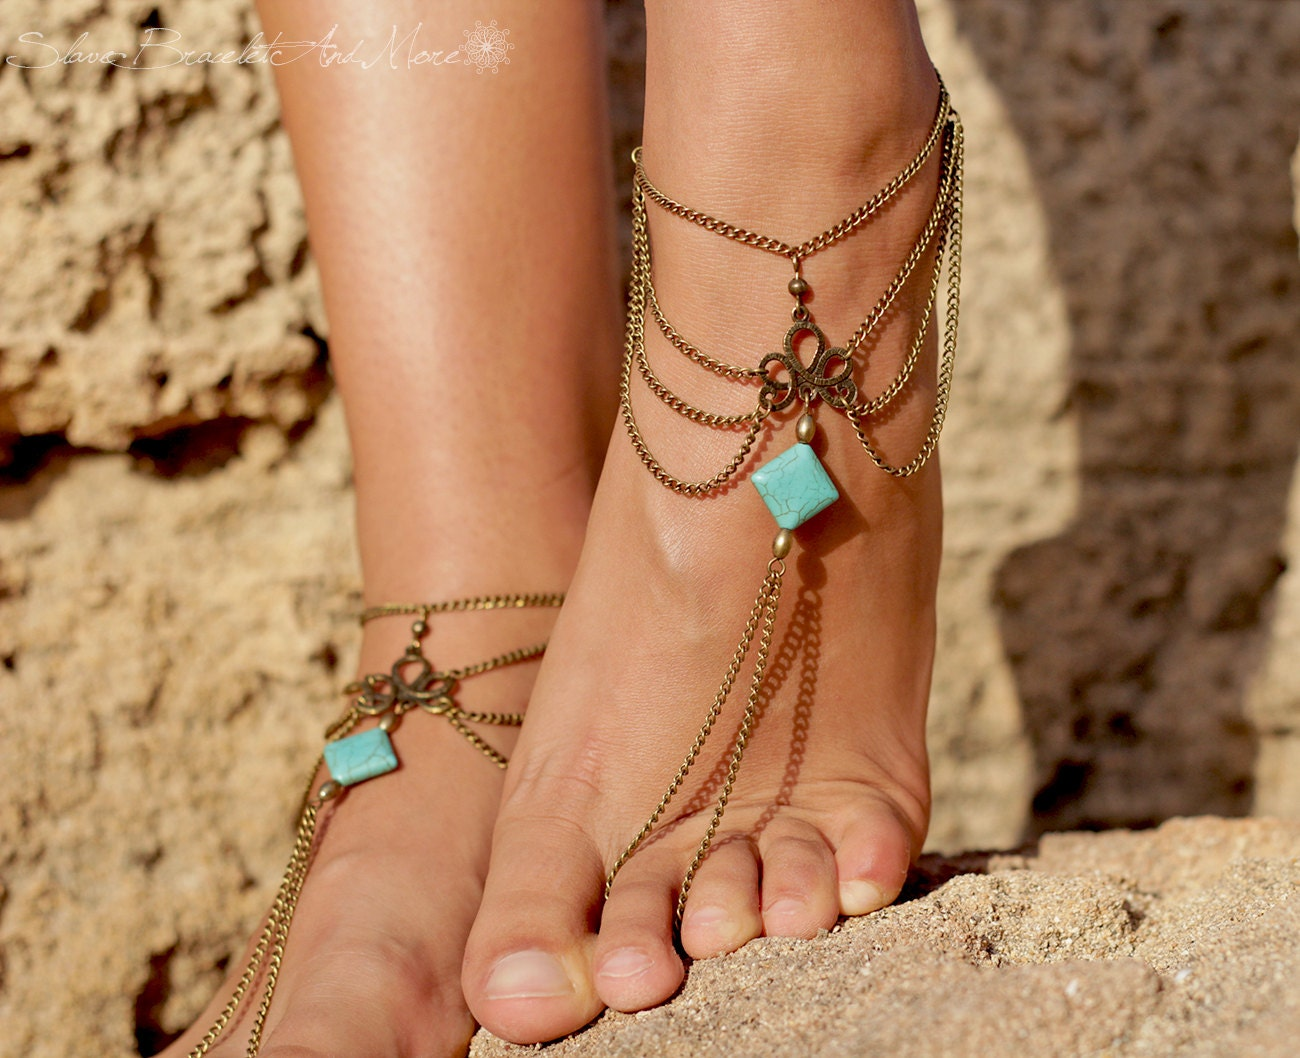 Wedding Foot Jewelry anklet foot jewelry barefoot sandals bronze turquoise boho